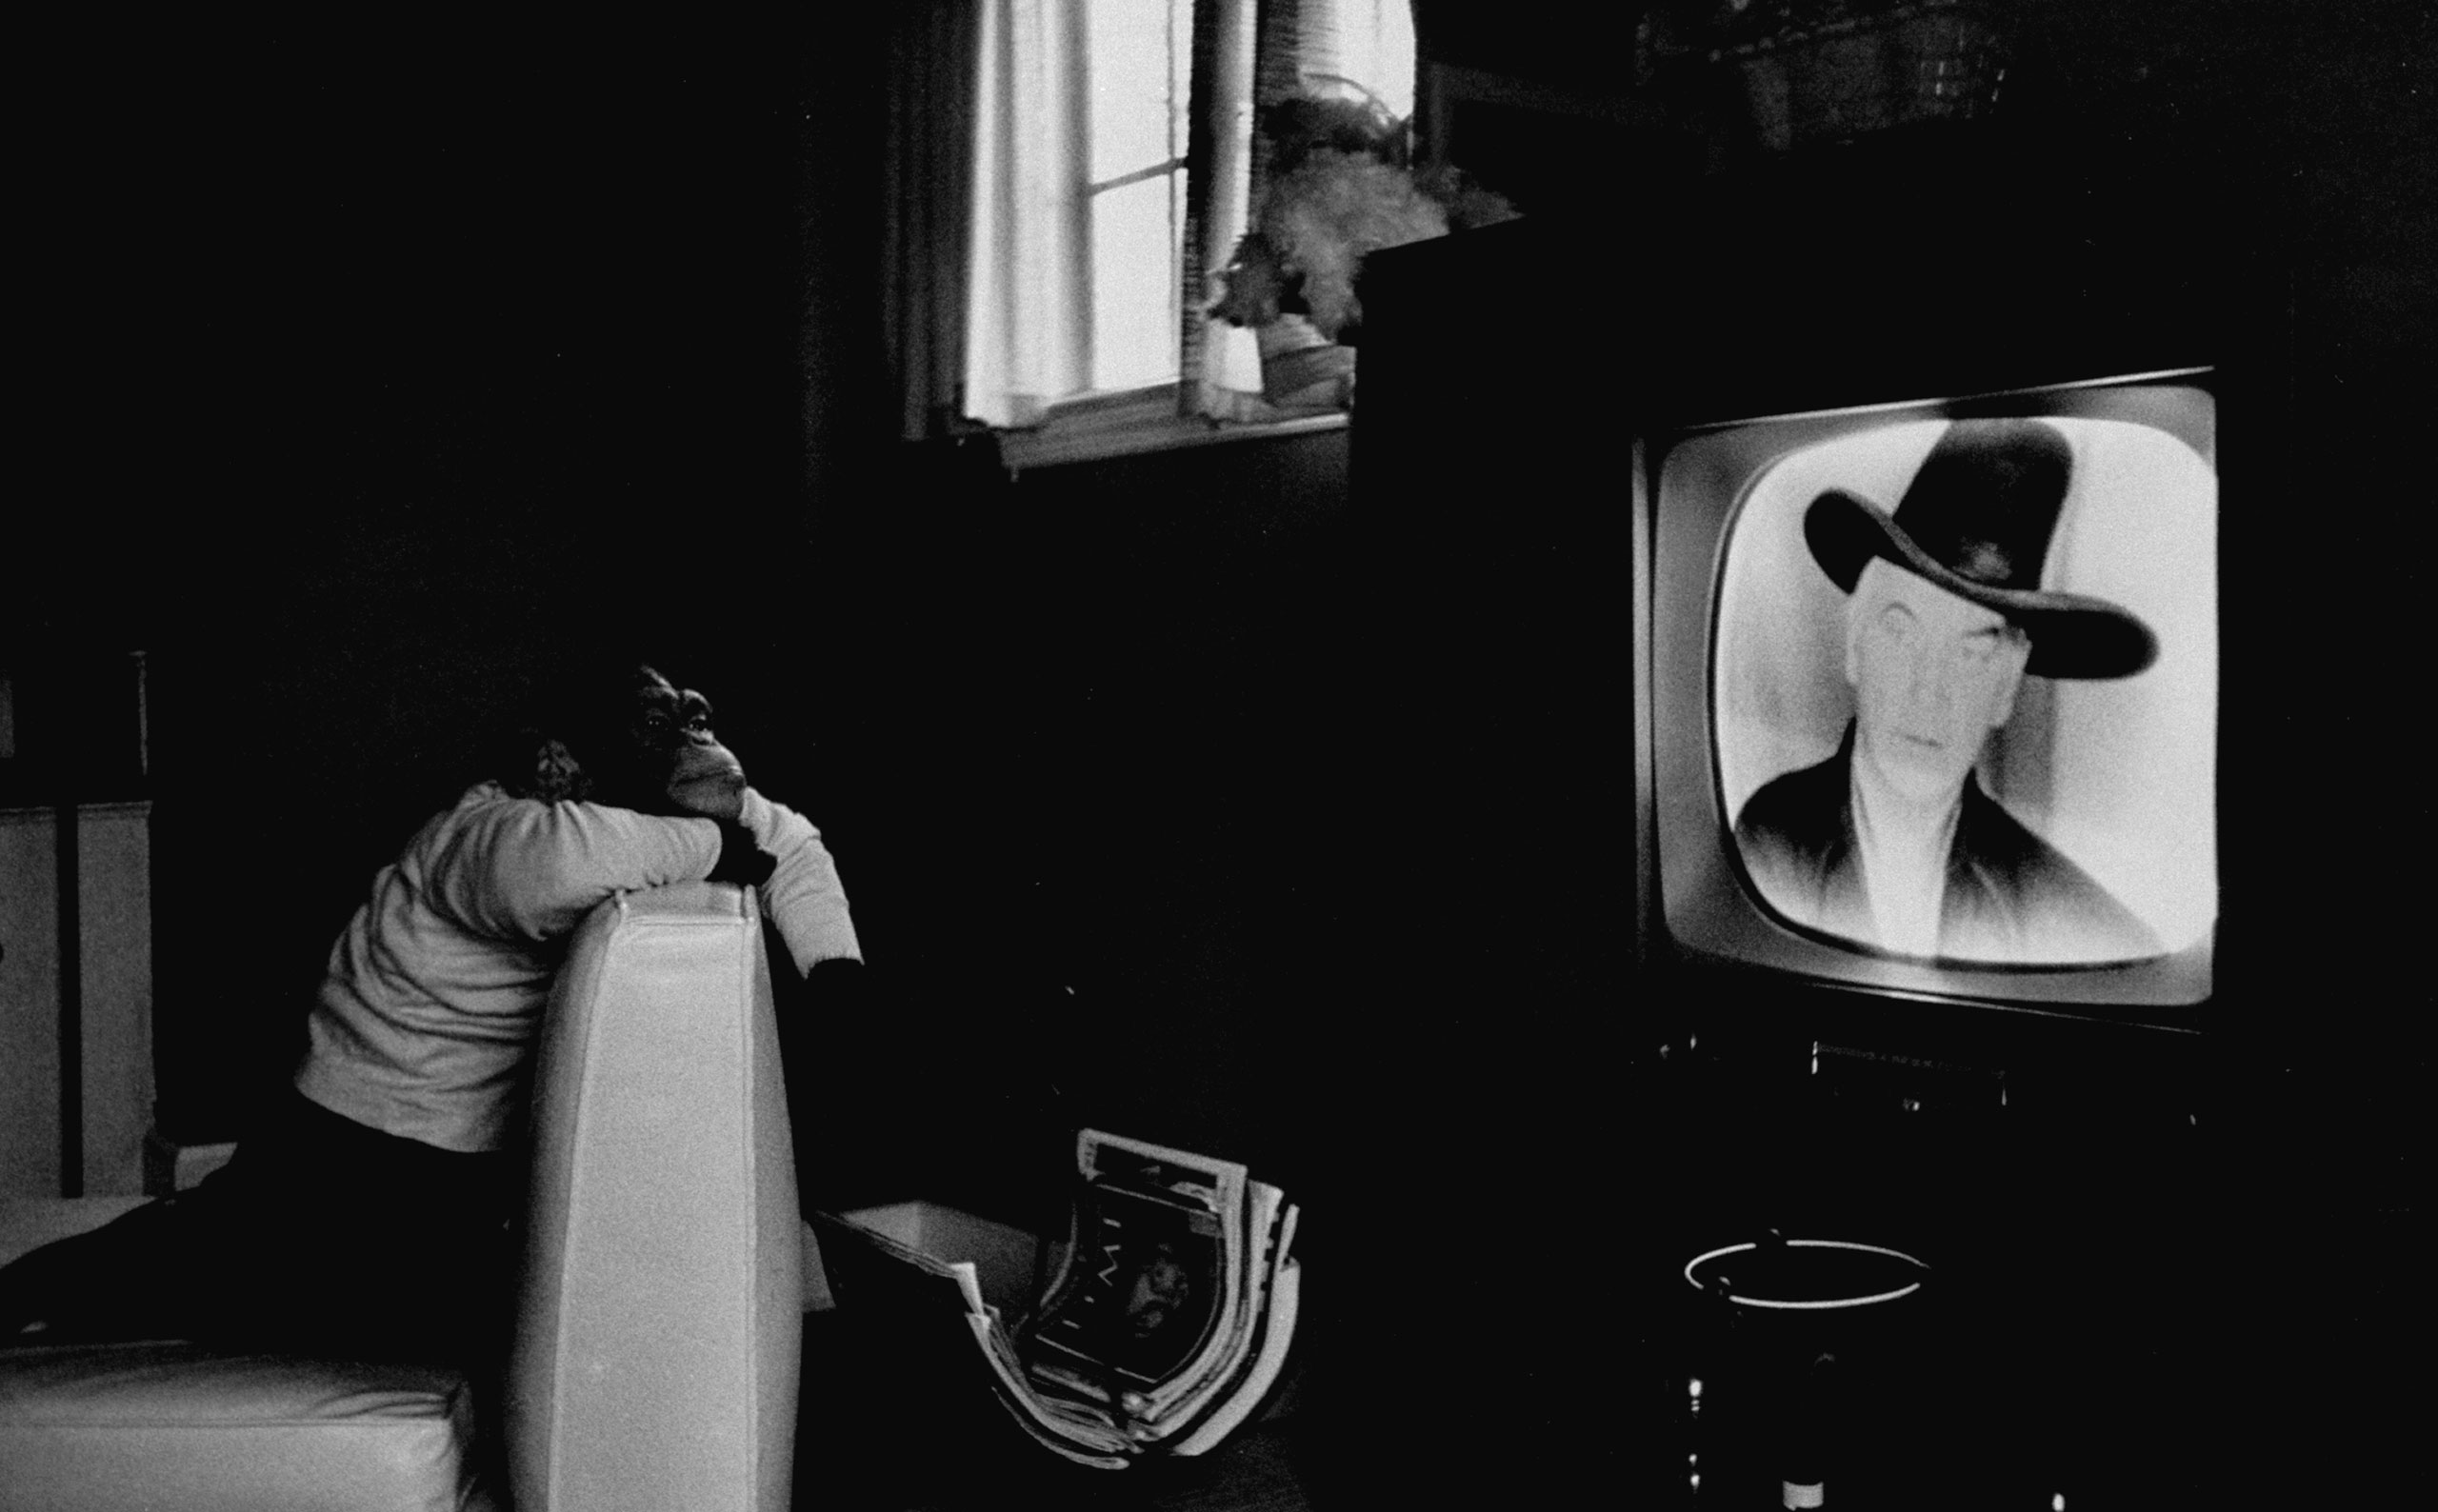 A performing chimpanzee named Zippy watches TV in 1955.